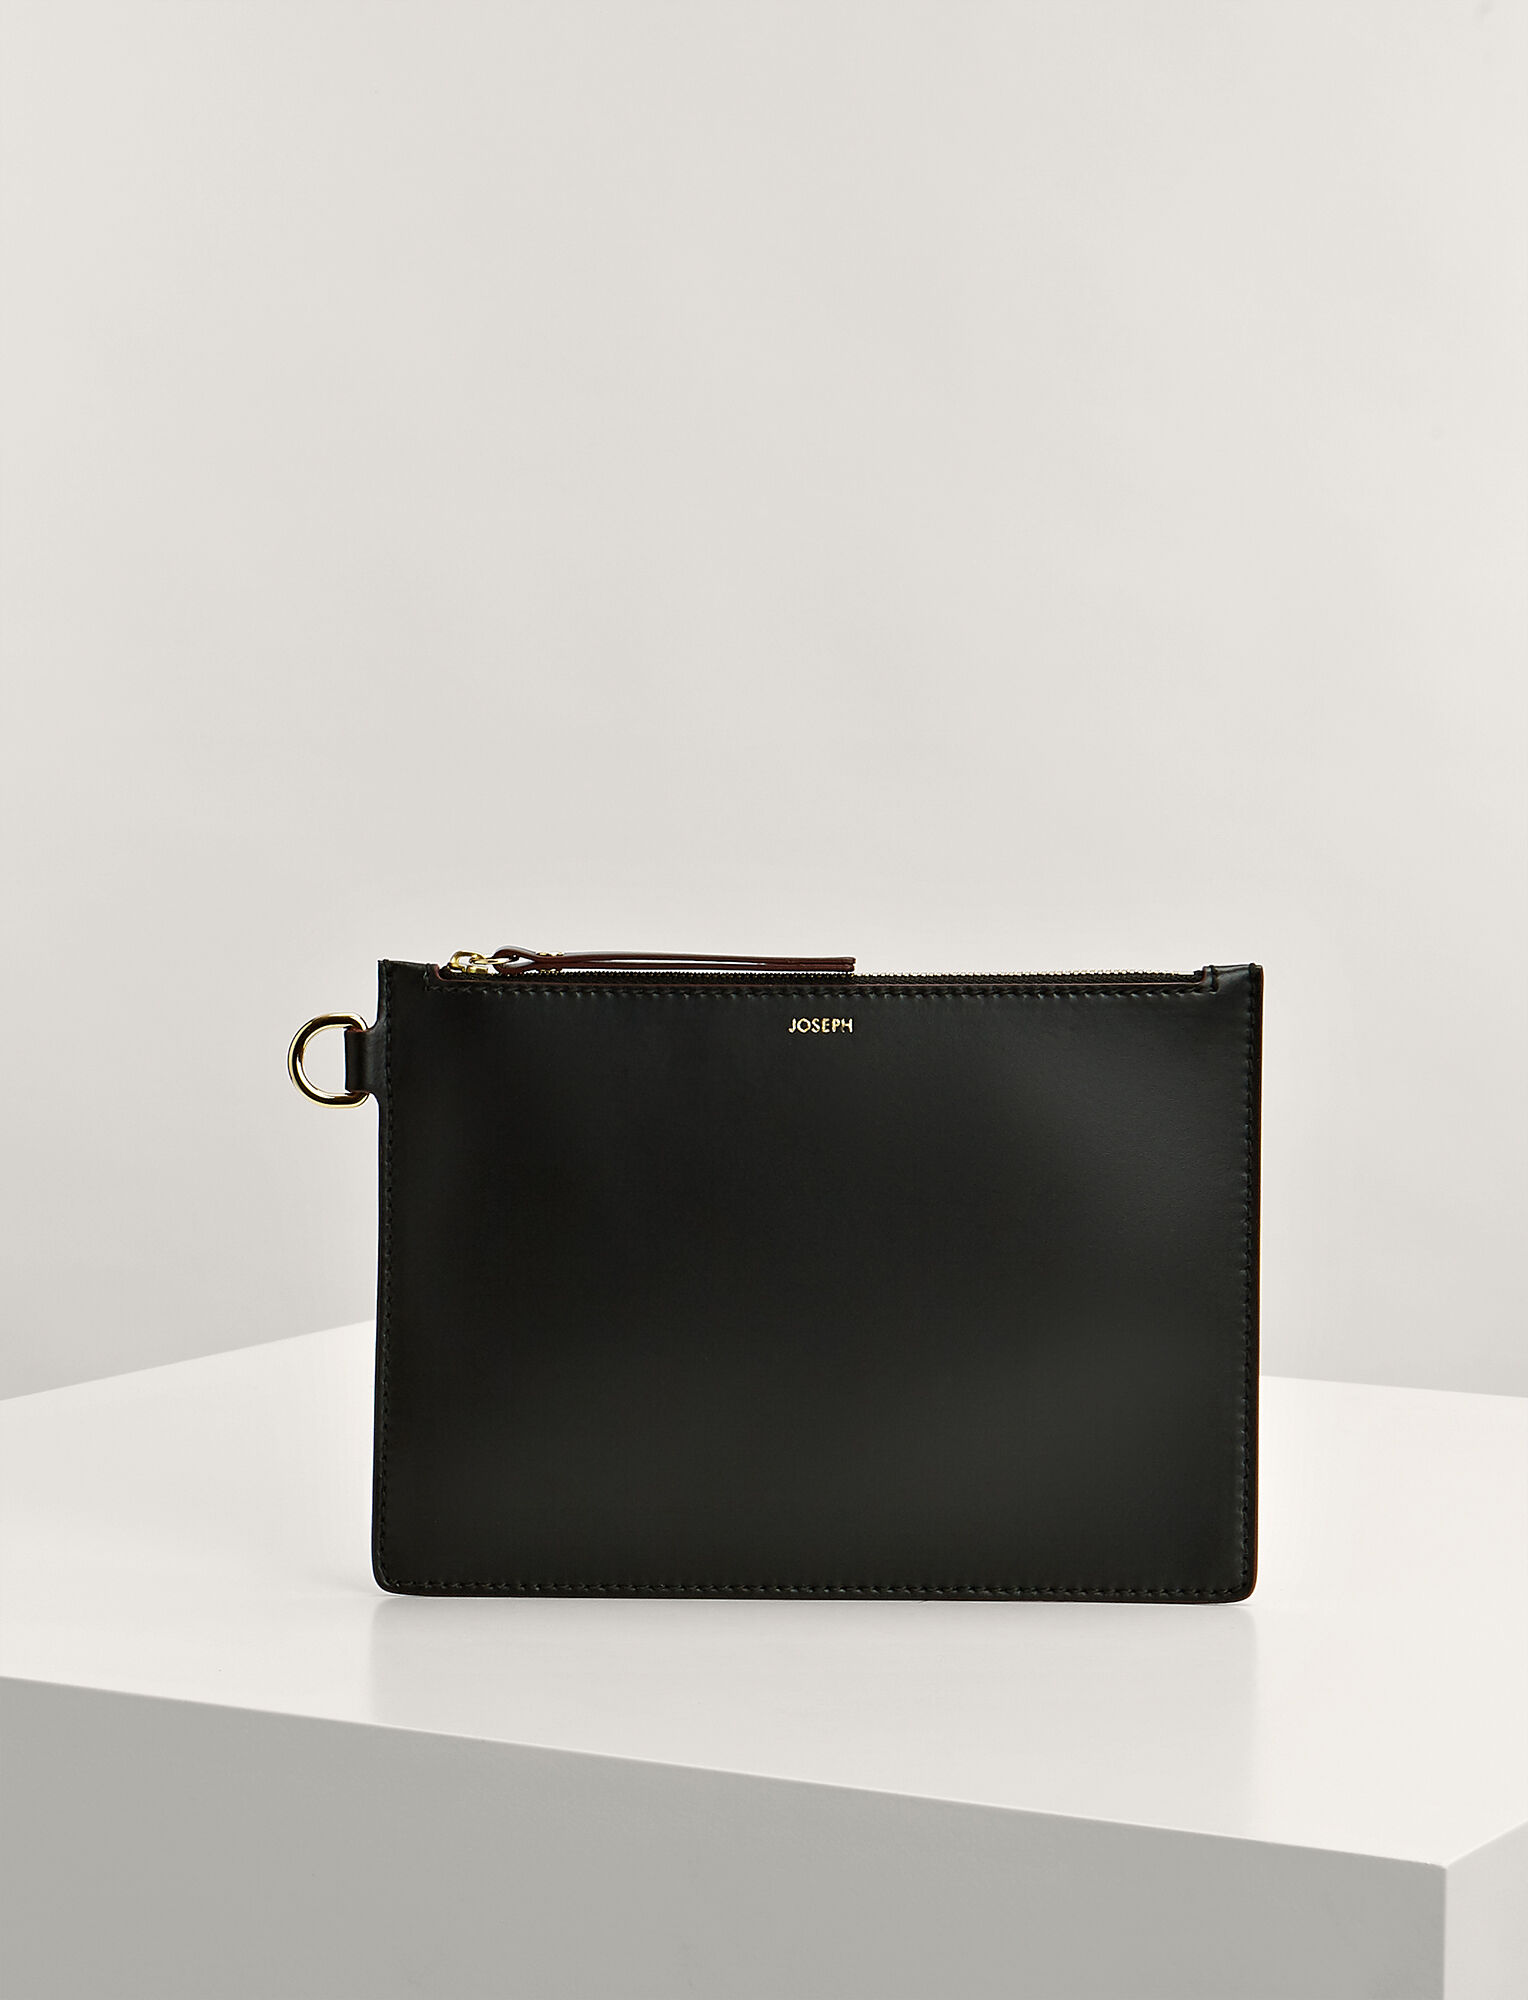 Joseph, Calf Leather Large Pouch, in BLACK